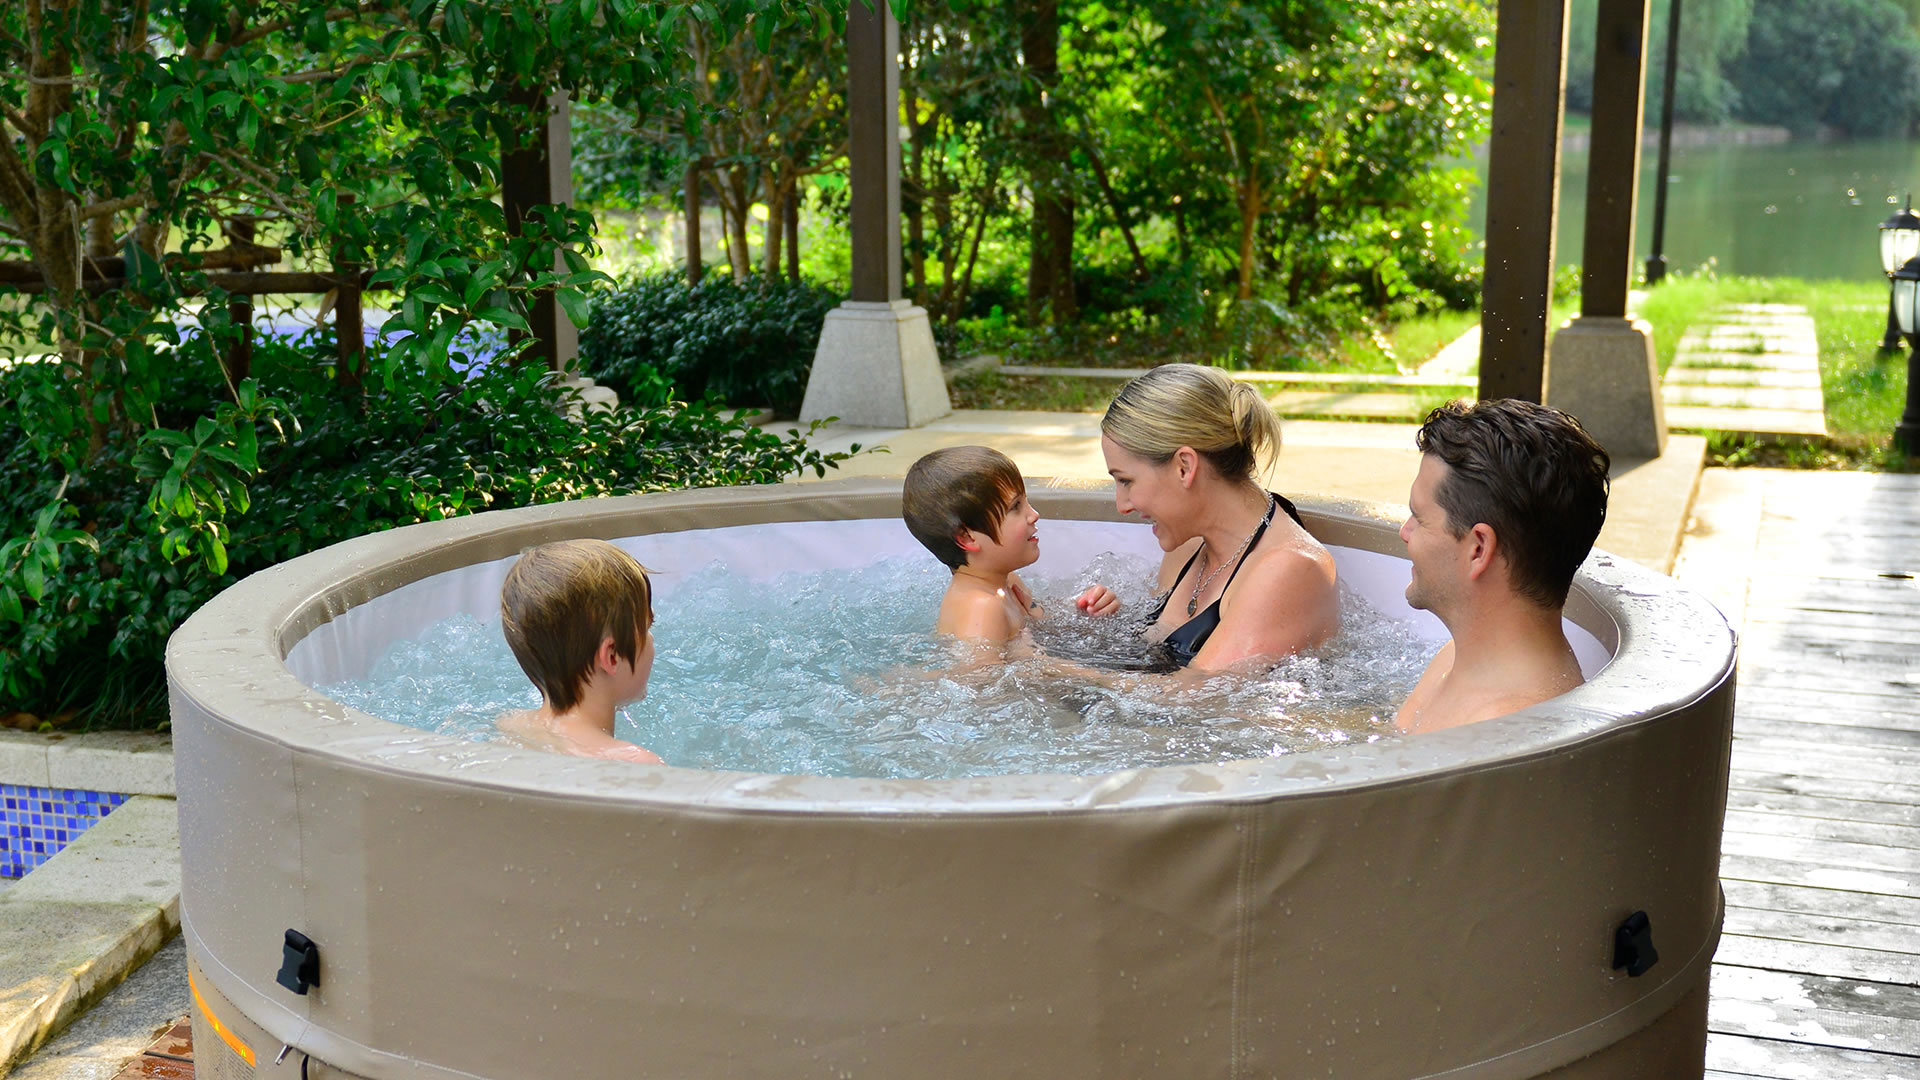 Cheap Hot Tubs Uk >> Inflatable Hot Tubs - the Best 2, 4, 6 and 8 Person Inflatable Hot Tubs!